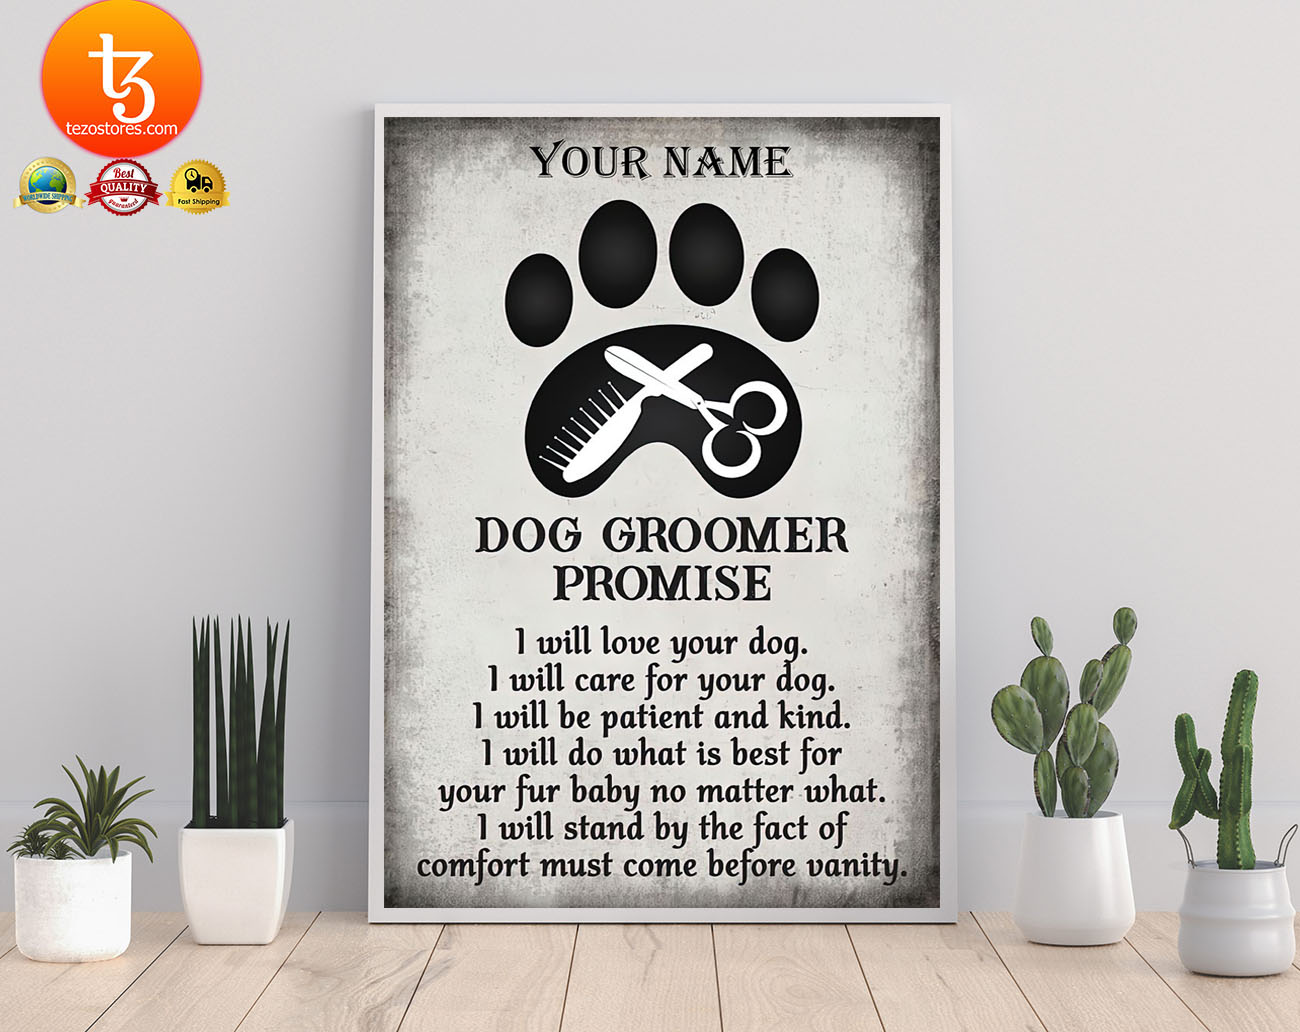 Dog groomer promise I will love your dog I will care for your dog custom name poster 22